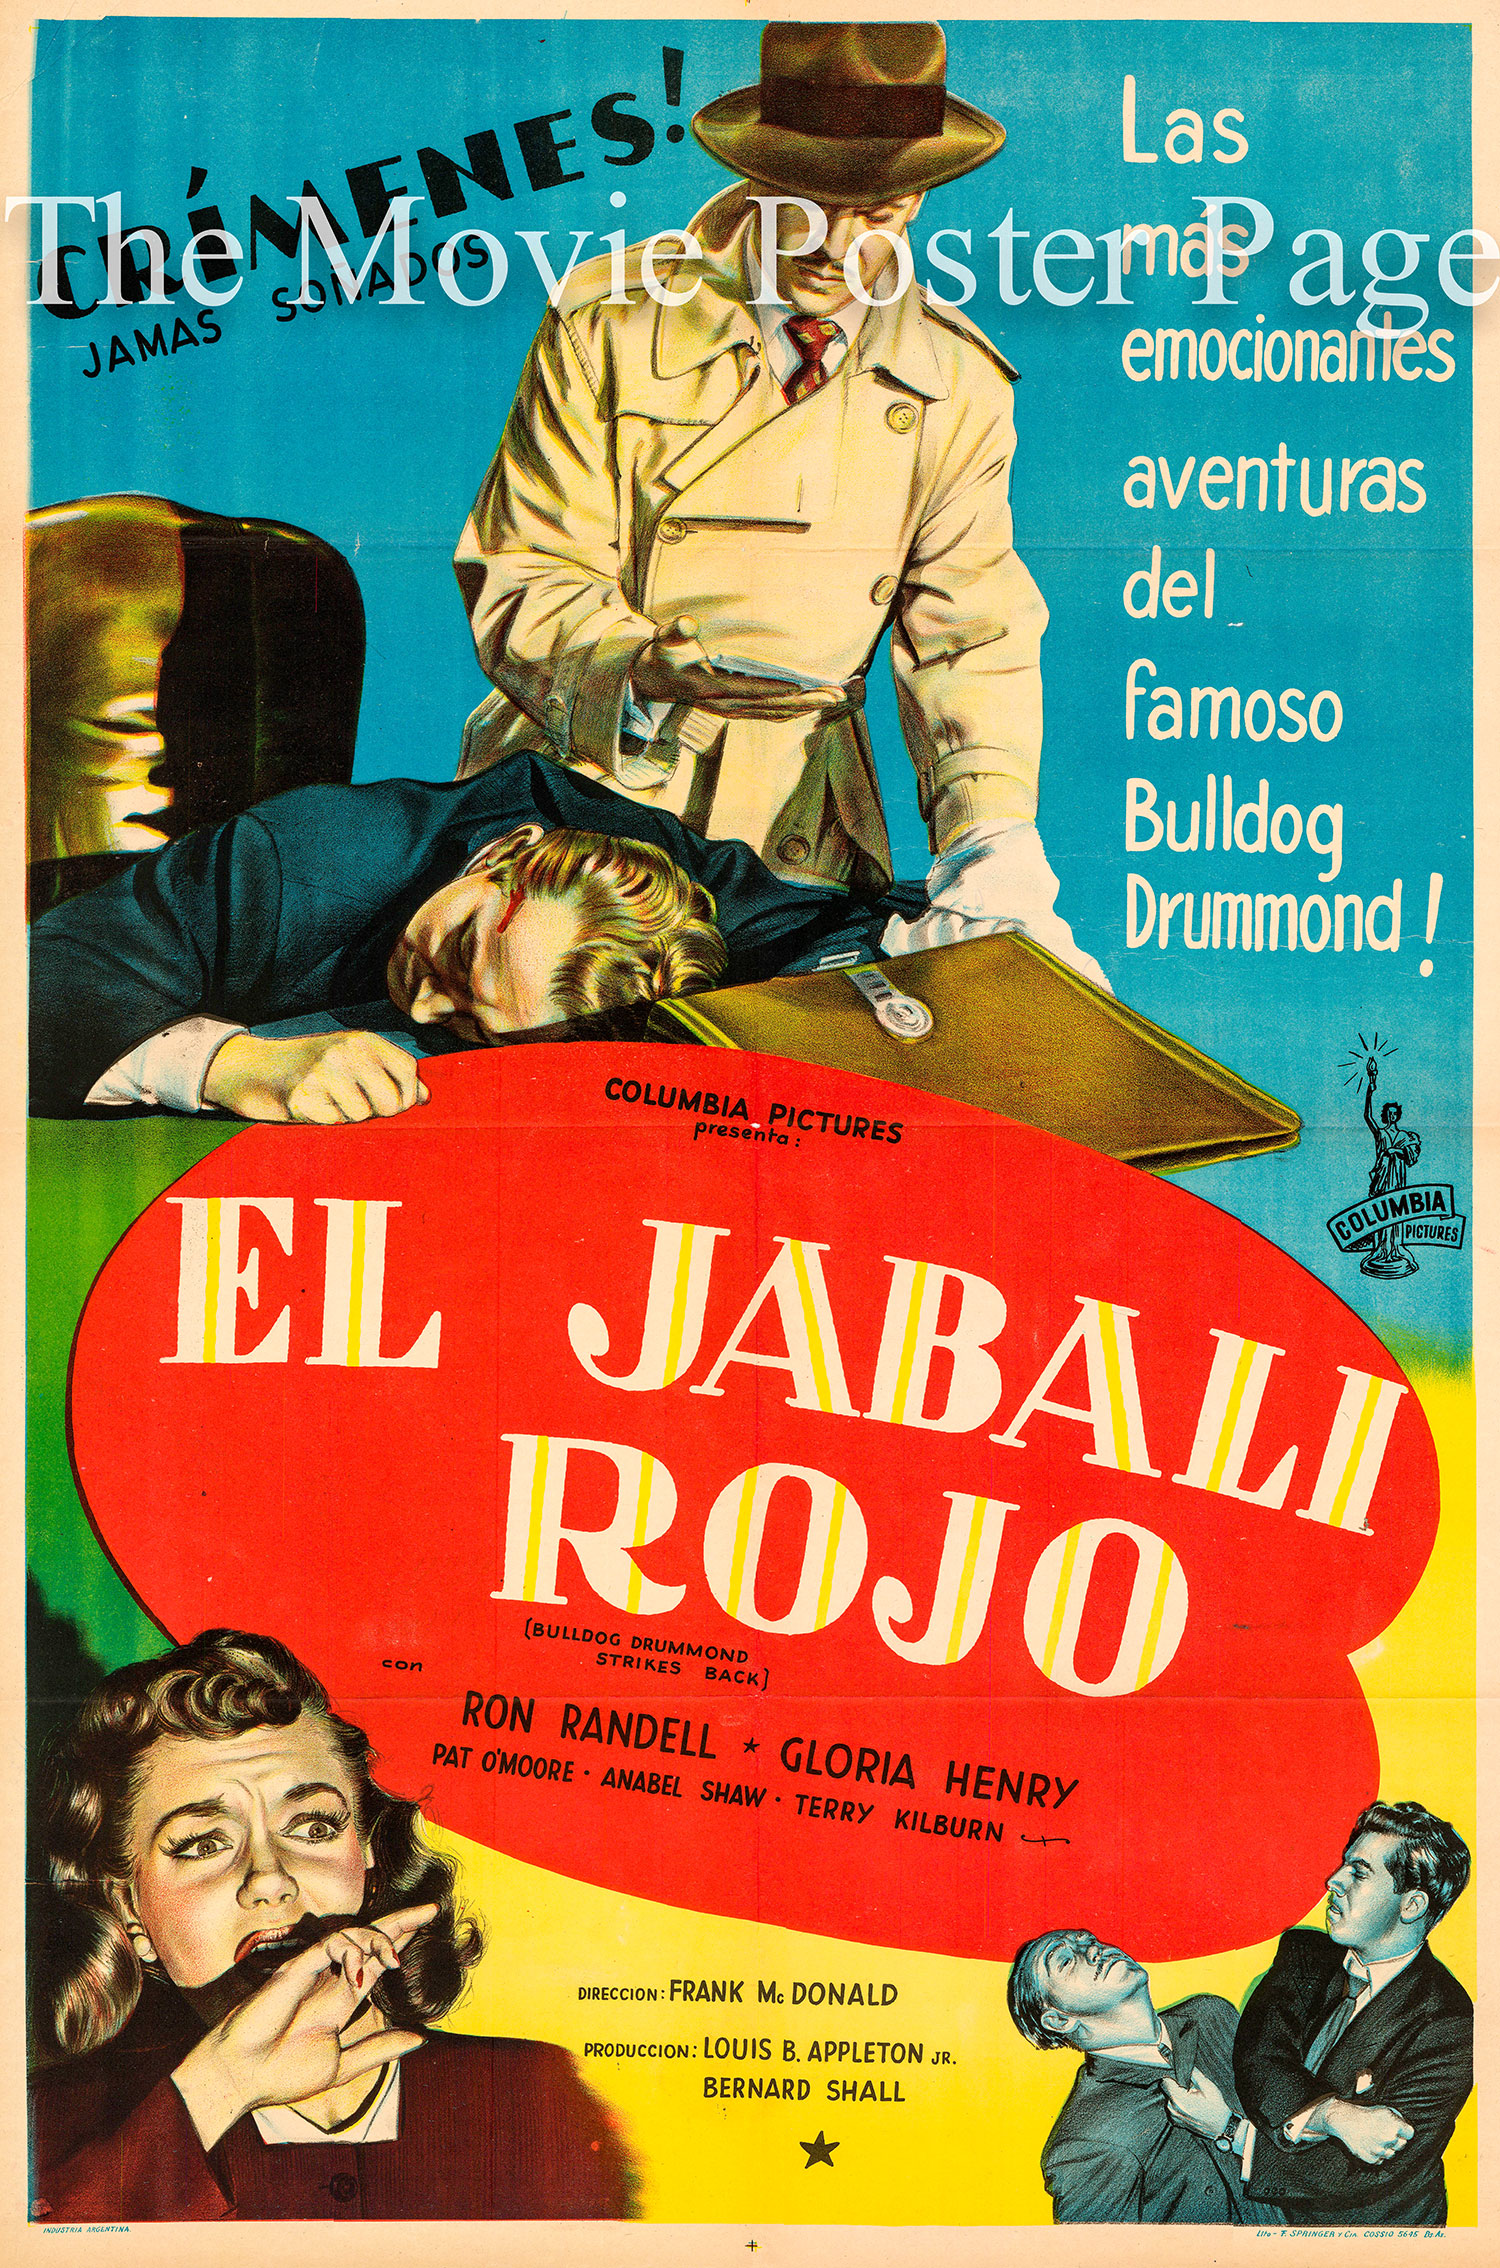 Pictured is an Argentine promotional poster for the 1947 Frank McDonald film Bulldog Drummond Strikes Back, starring Ron Randell as Bulldog Drummond.